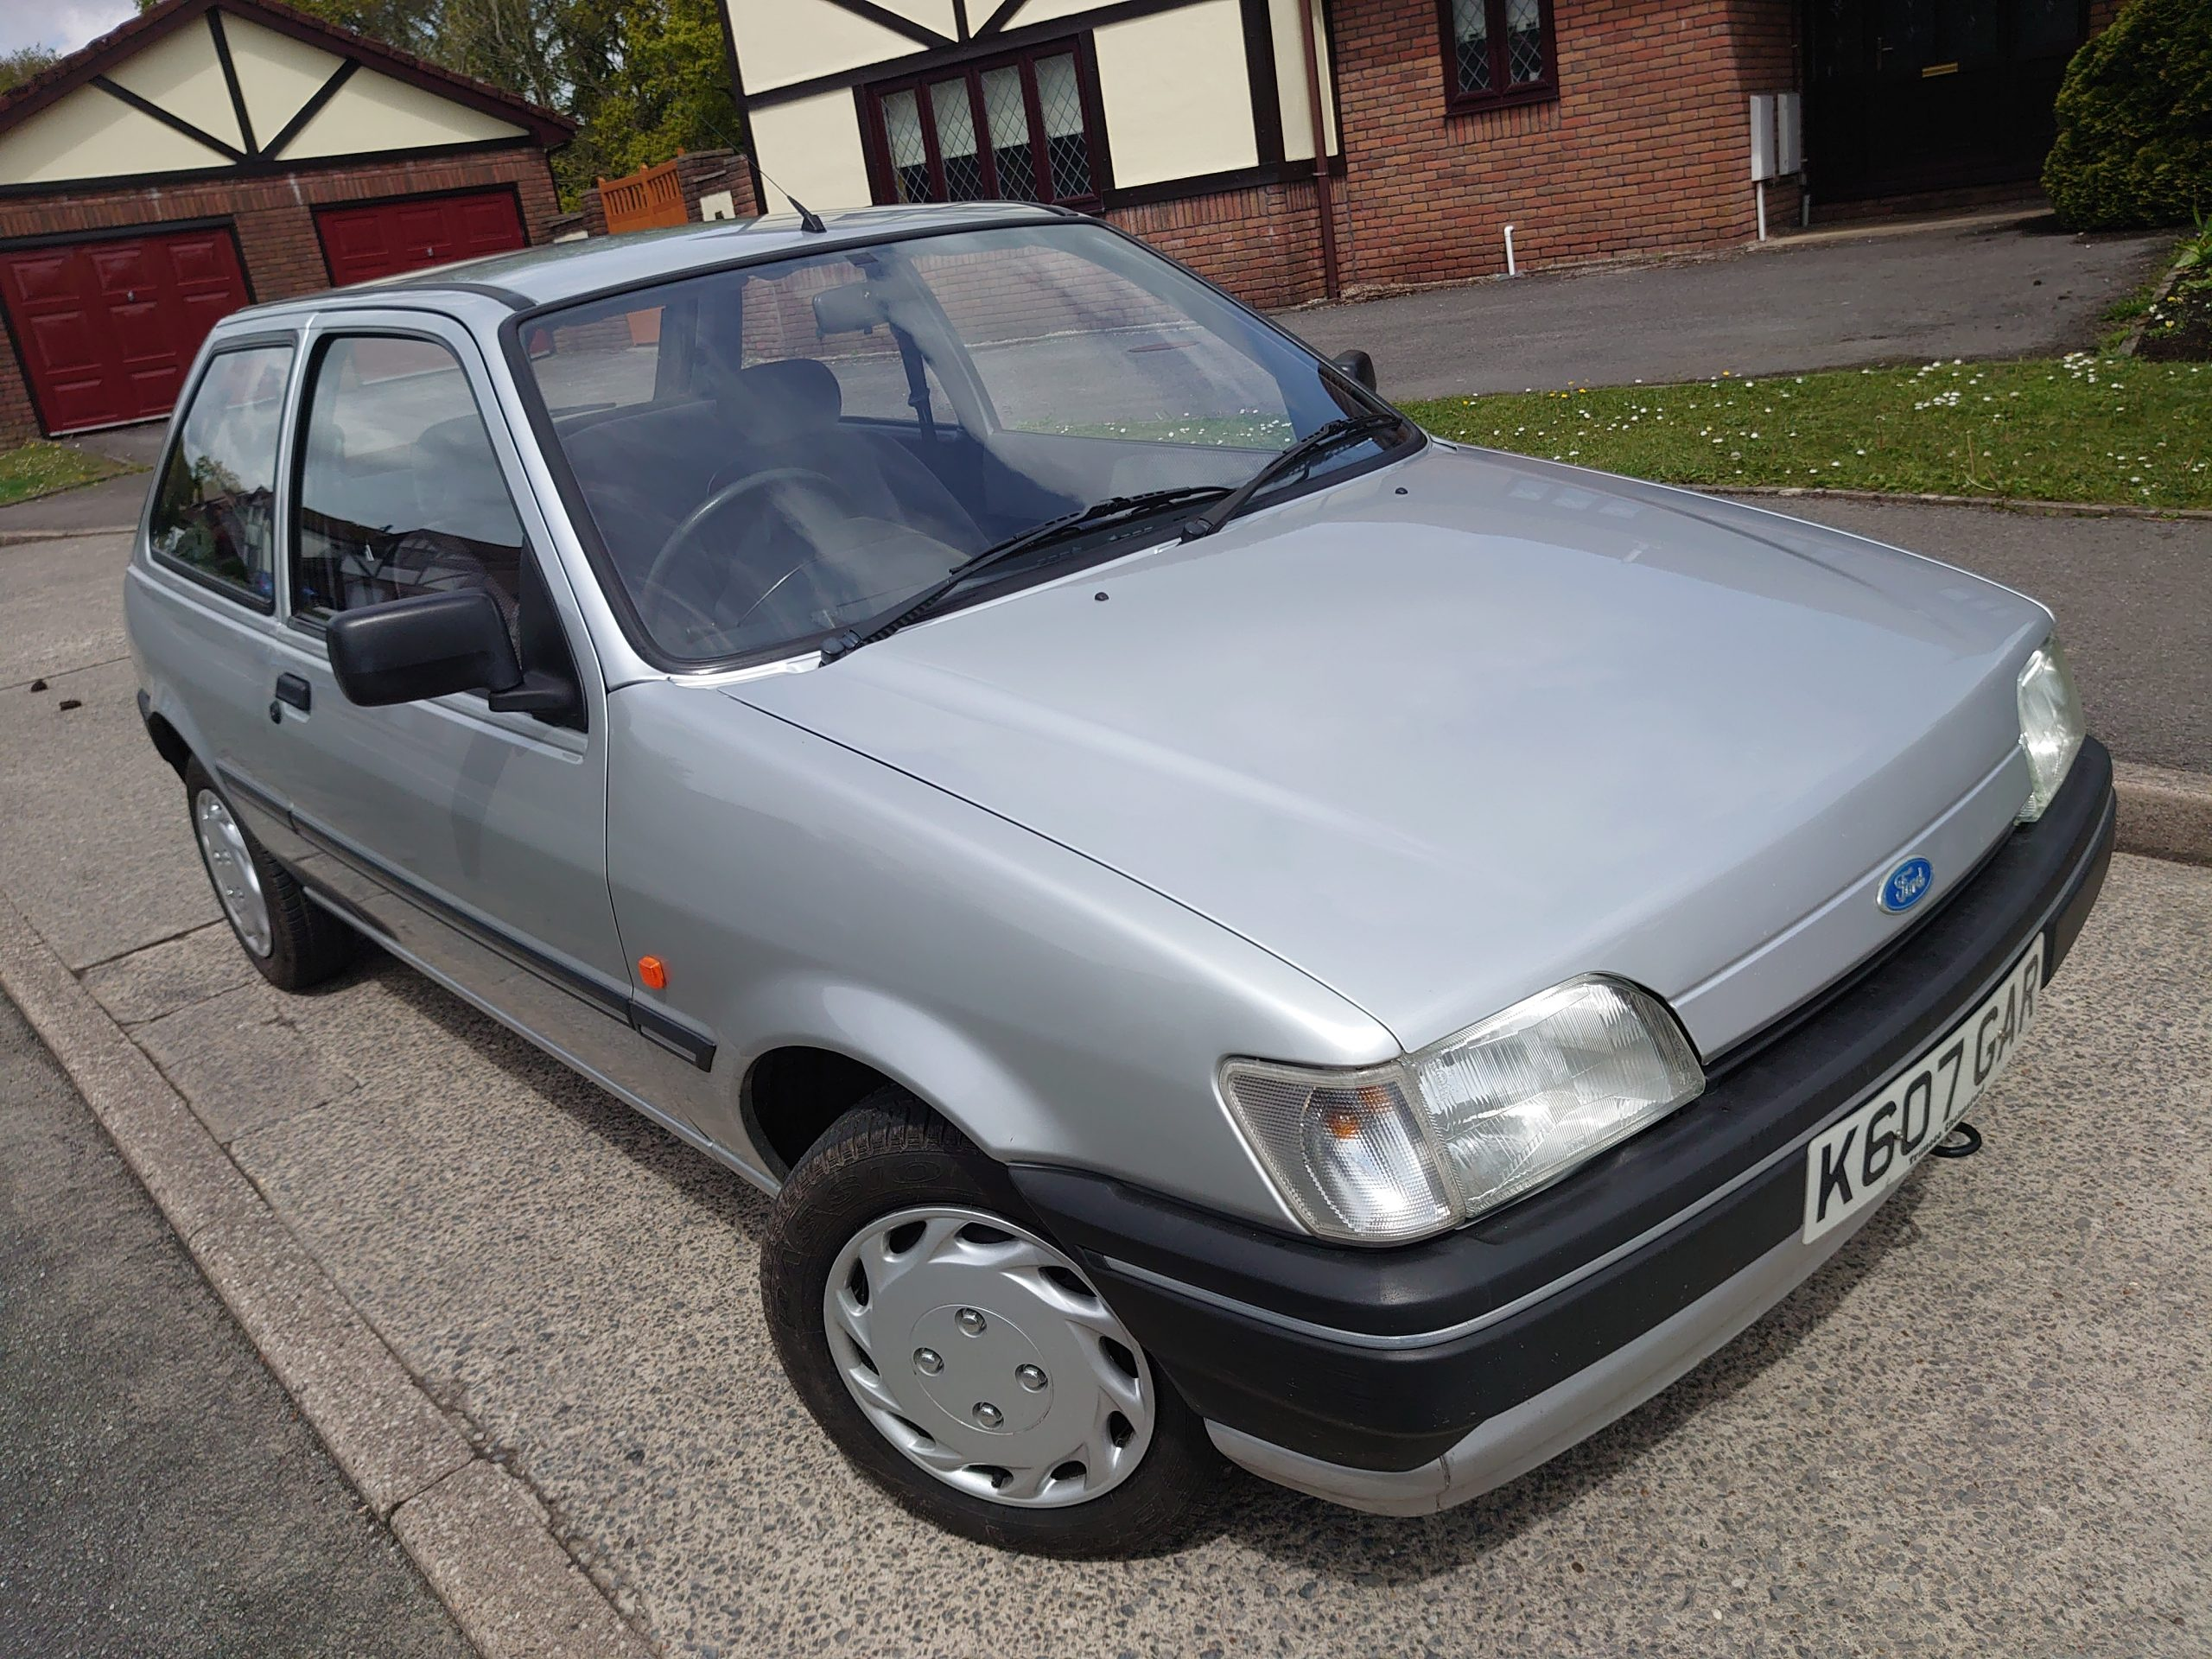 Unexceptional Classifieds: Ford Fiesta 1.3L automatic